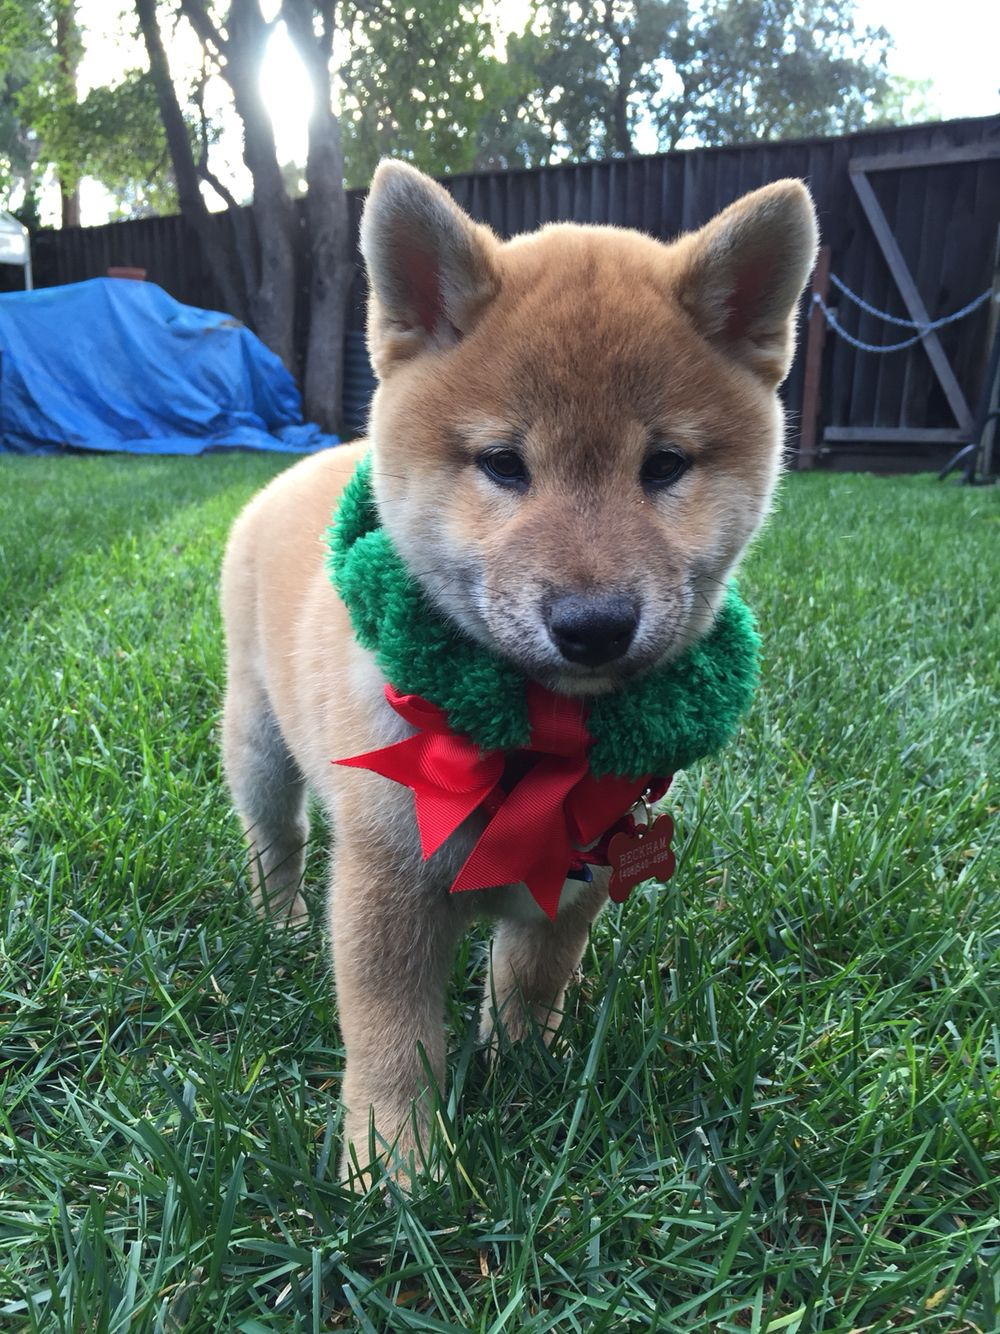 Merry Christmas from the Domingo's! Our shiba inu puppy